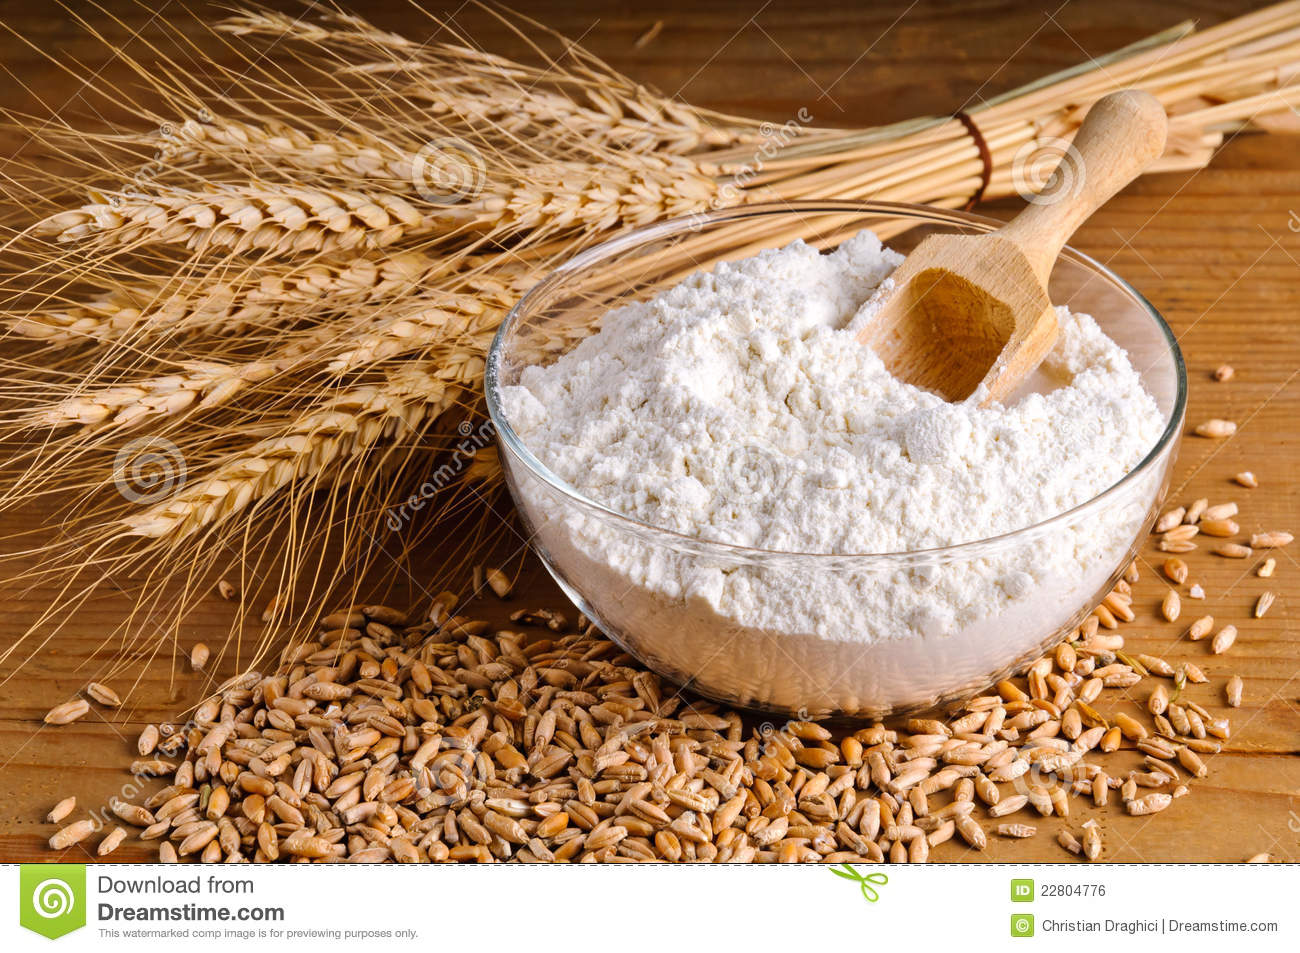 Wheat, grain and flour